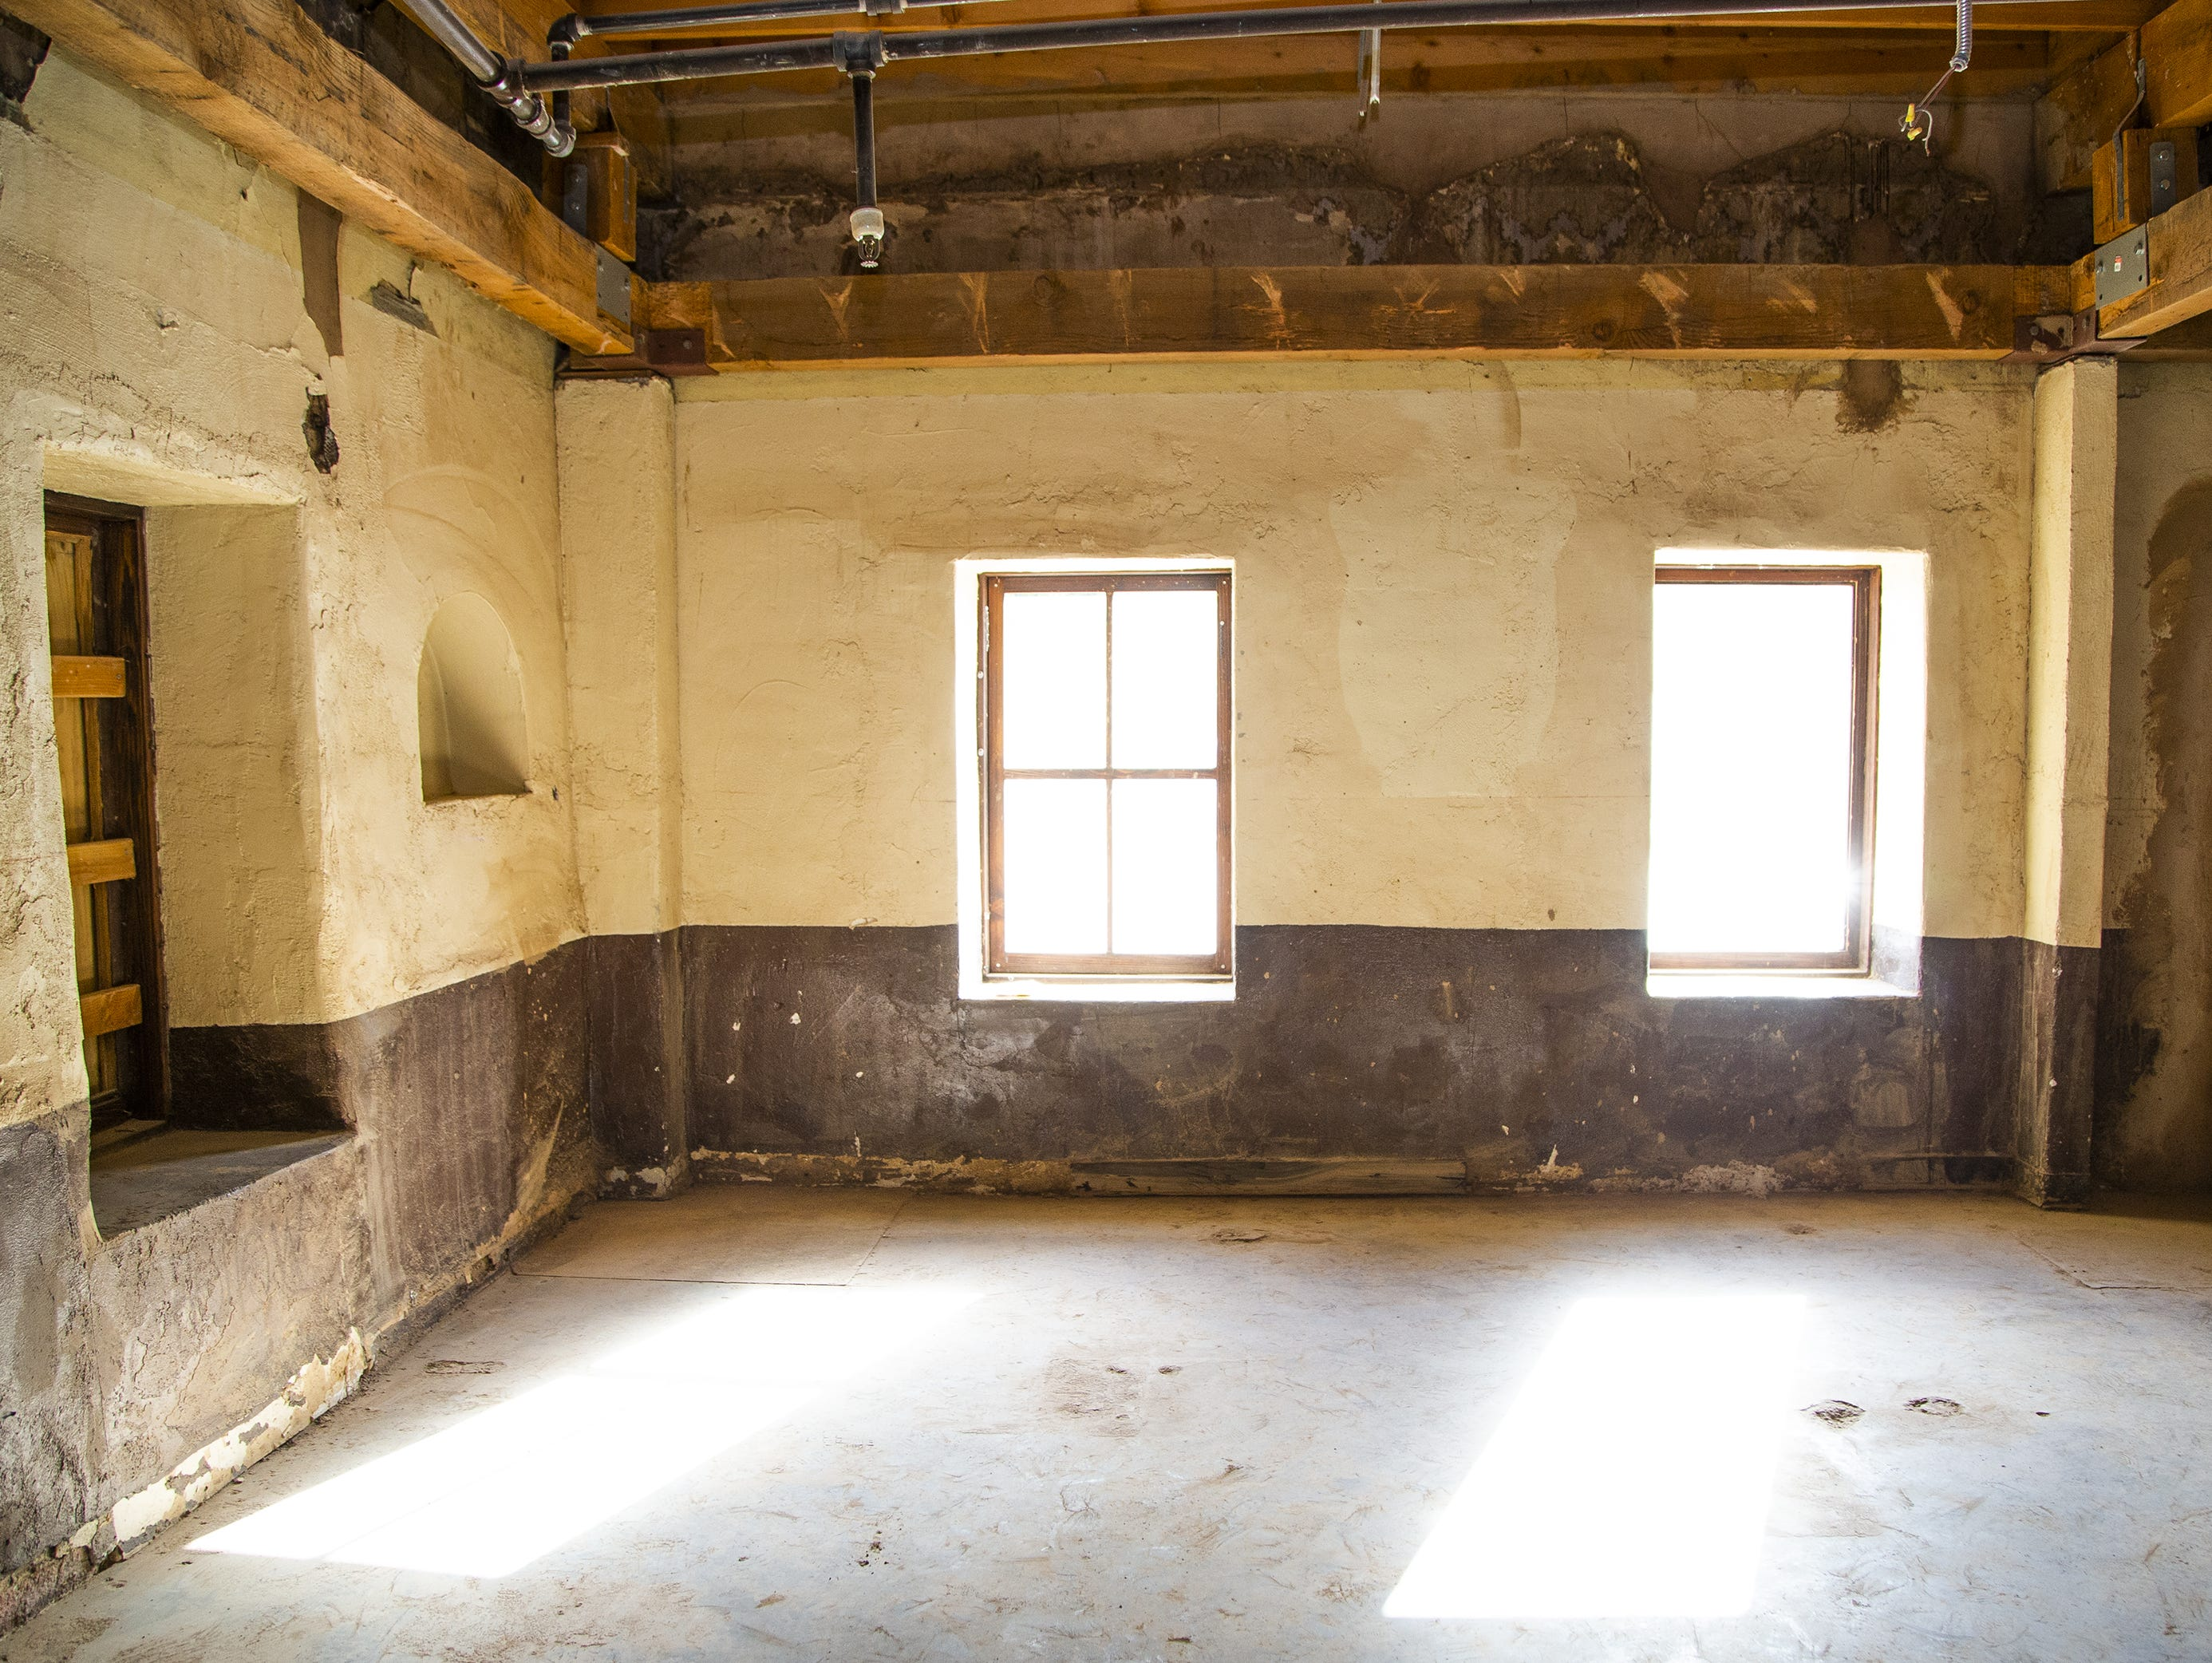 This is the interior of the room that Carl Hayden was born in at Monti's La Casa Vieja.   Parts of the historic building on Mill Avenue in Tempe are being torn down on March 21, 2019. The parts of the building that are original, dating back to the late 1800s, are being retained. Only add-ons and additions made in later years are being torn down.